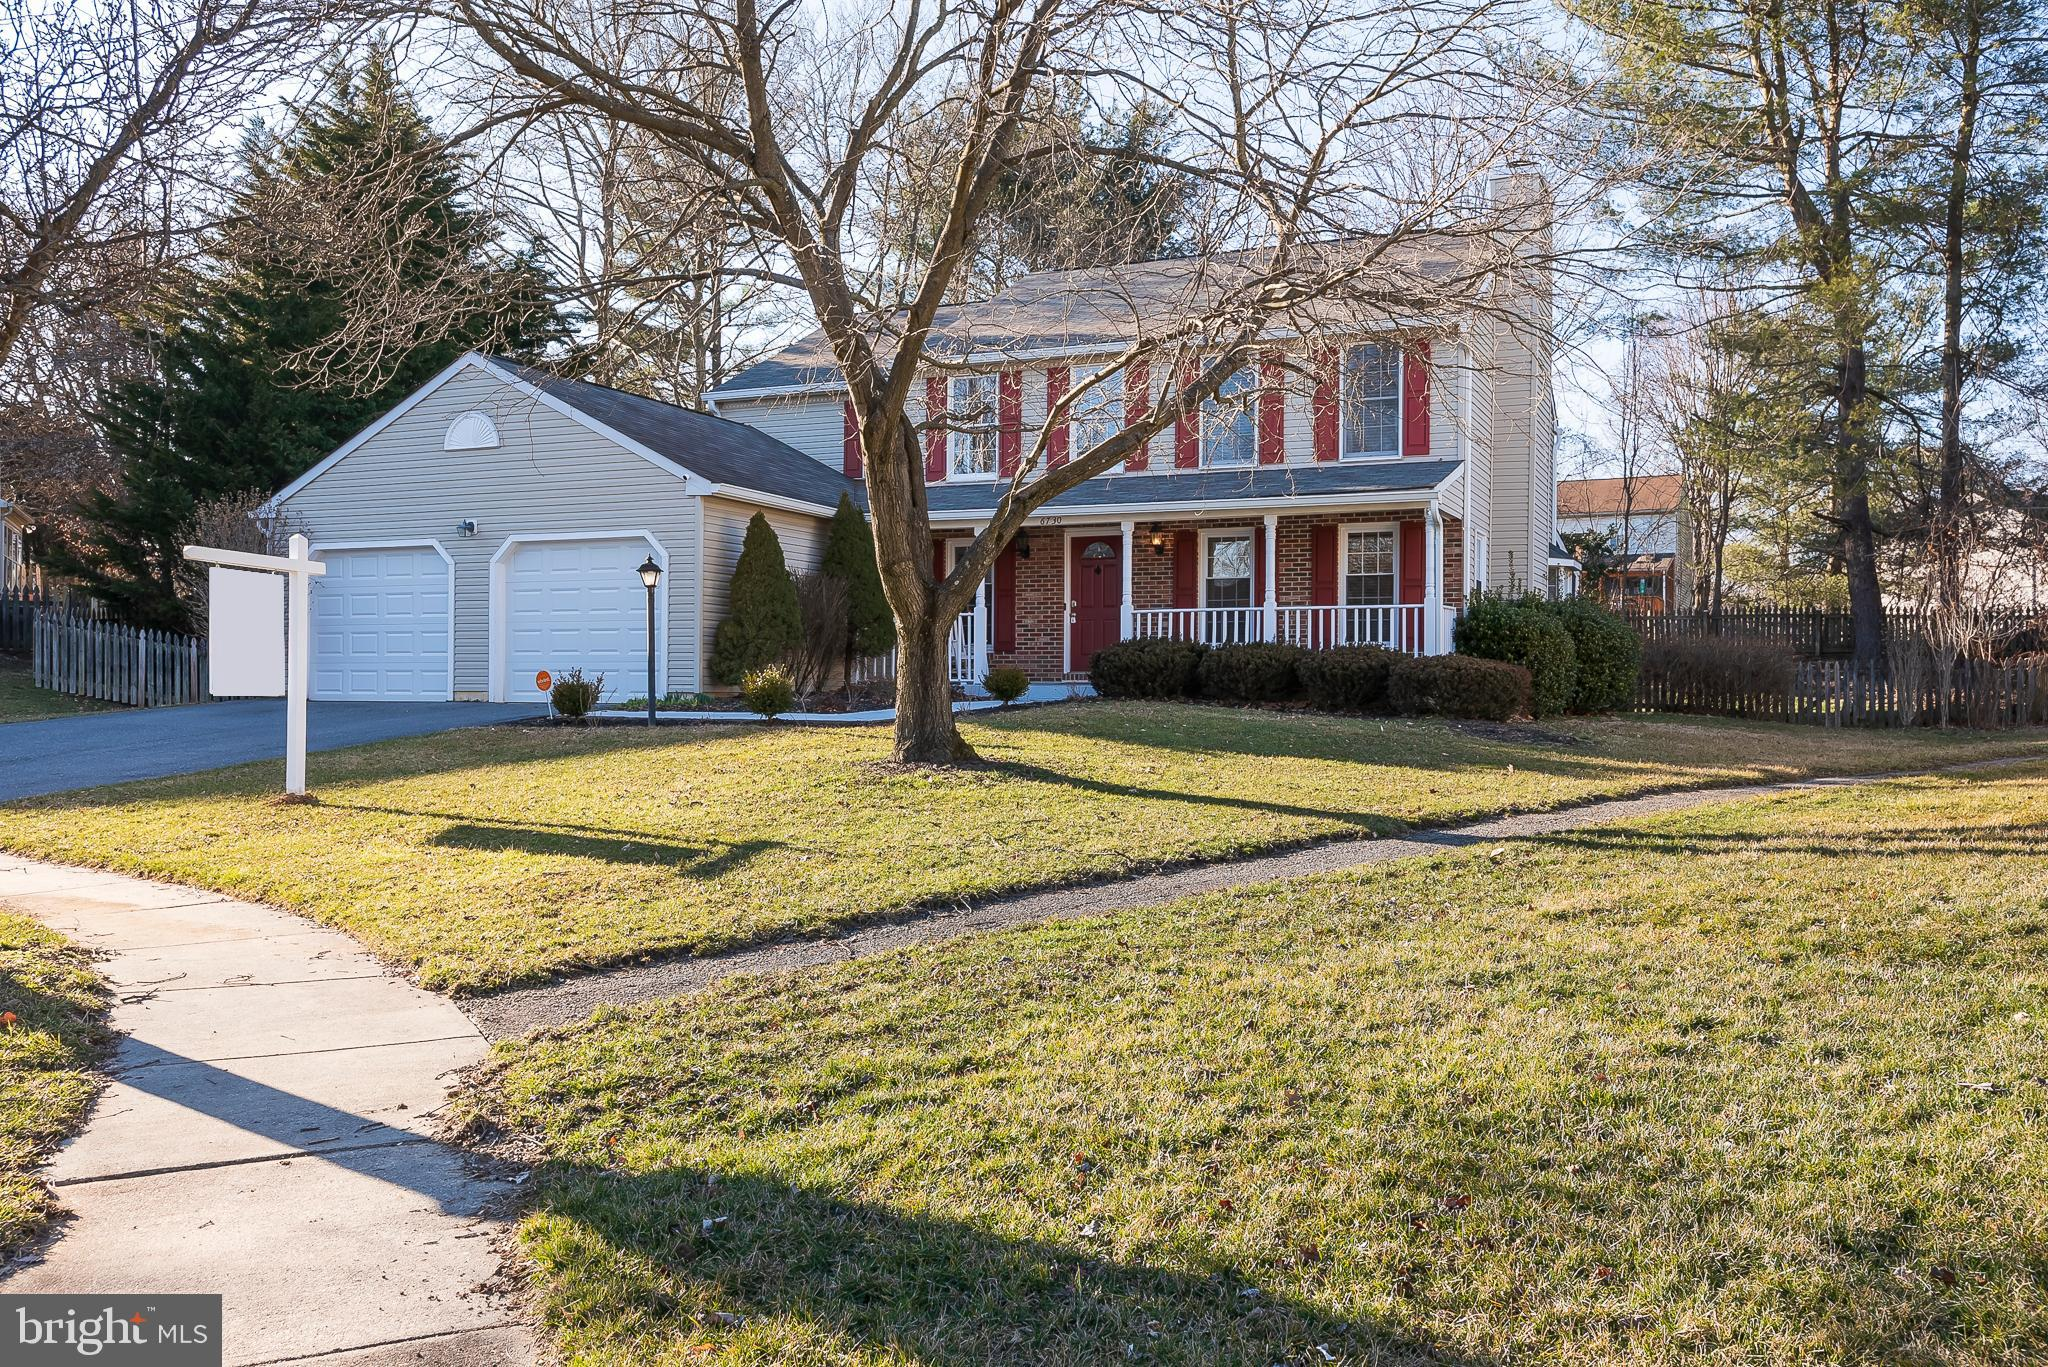 6730 SUMMER RAMBO COURT, COLUMBIA, MD 21045